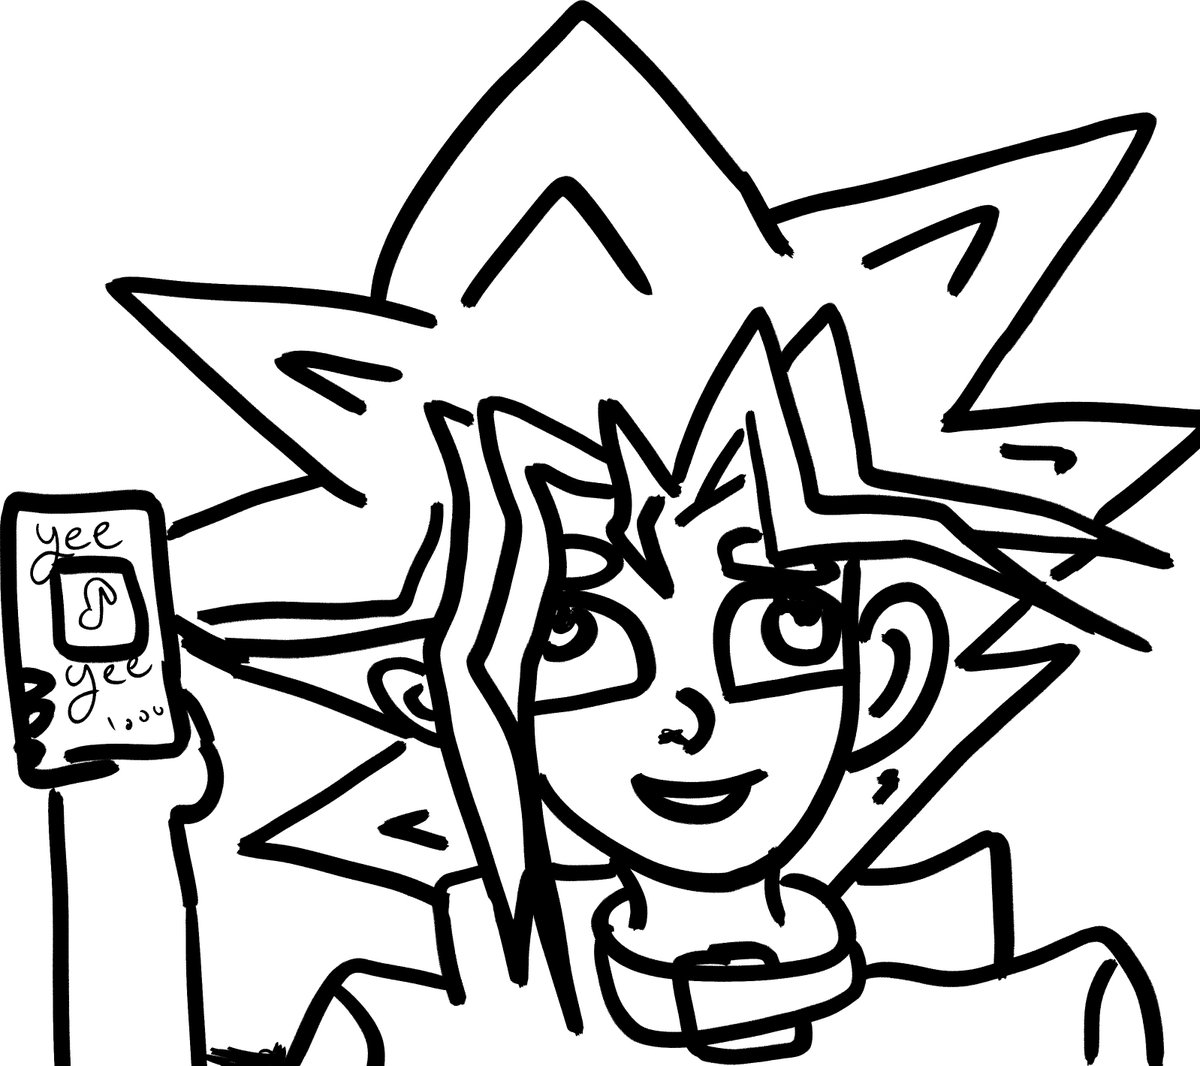 I drew this in 5 min for a friend~!  #yugioh #5minutesketch #doodle #art #anime #lineart #bad #Yeehaw #trapcard #meme #wow #cute